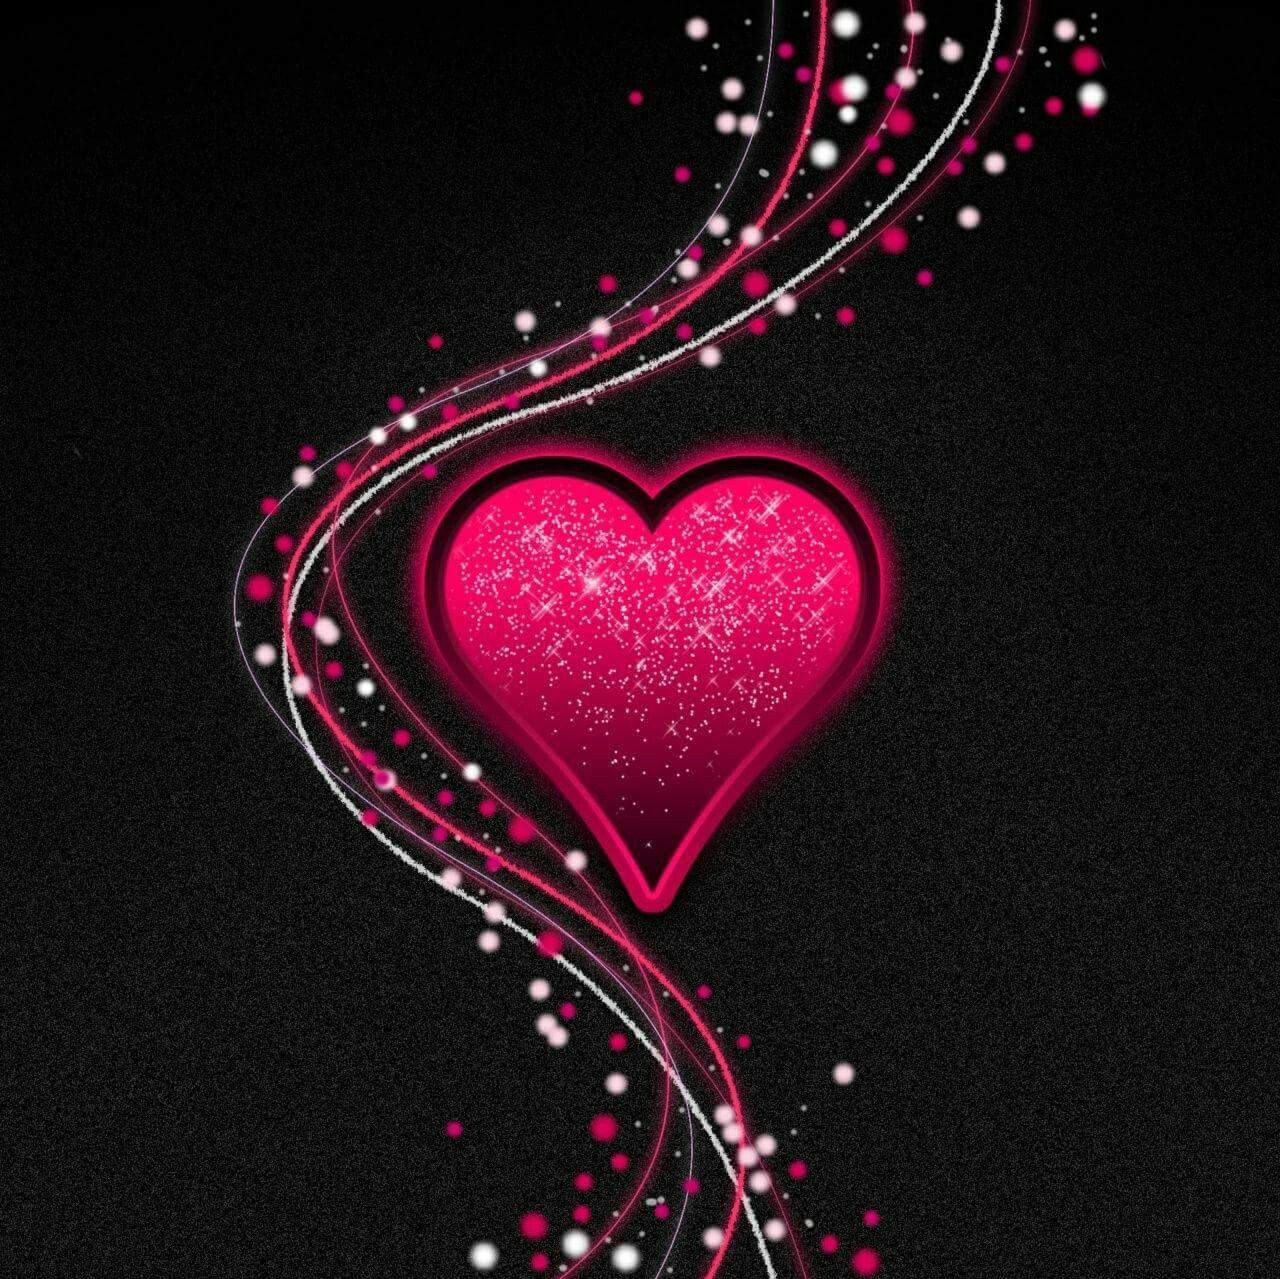 Pin by Julie Purcell on Hearts. Valentines wallpaper